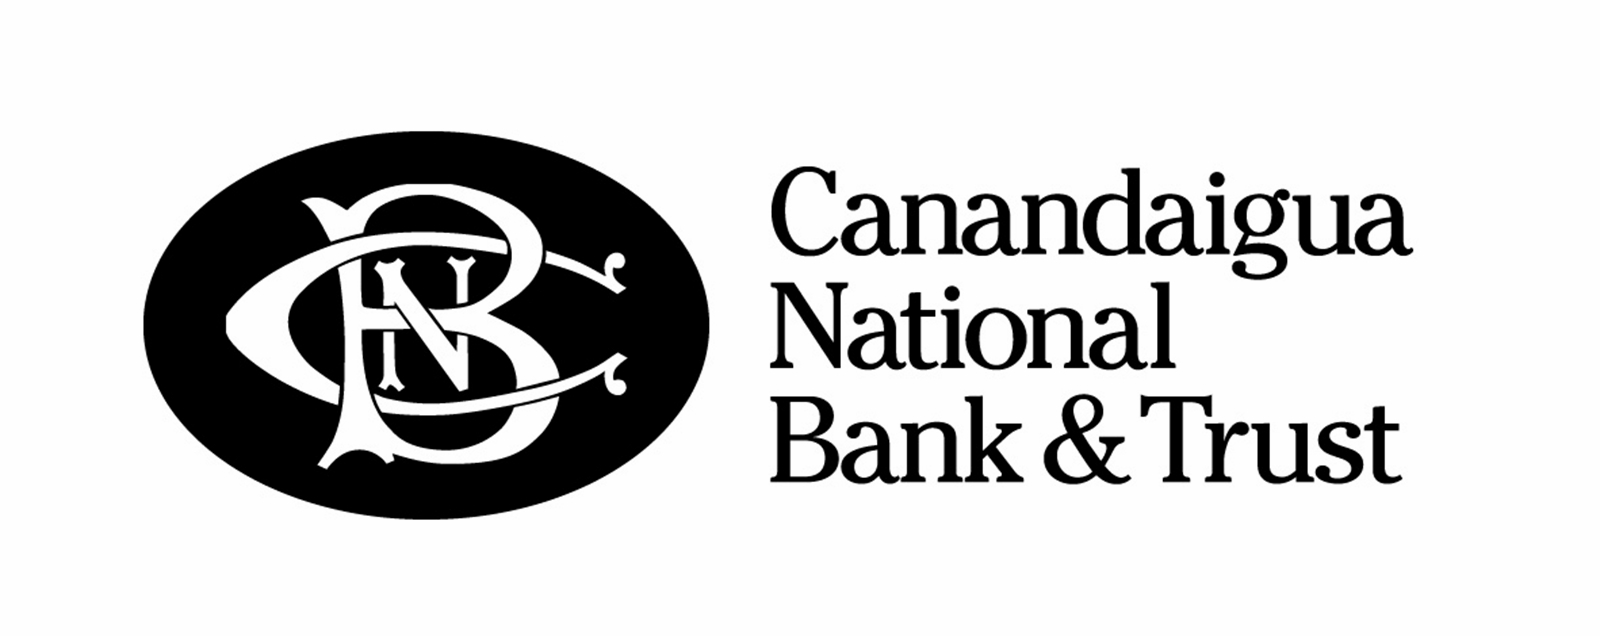 Canandaigua National Bank & Trust Credit Card Payment